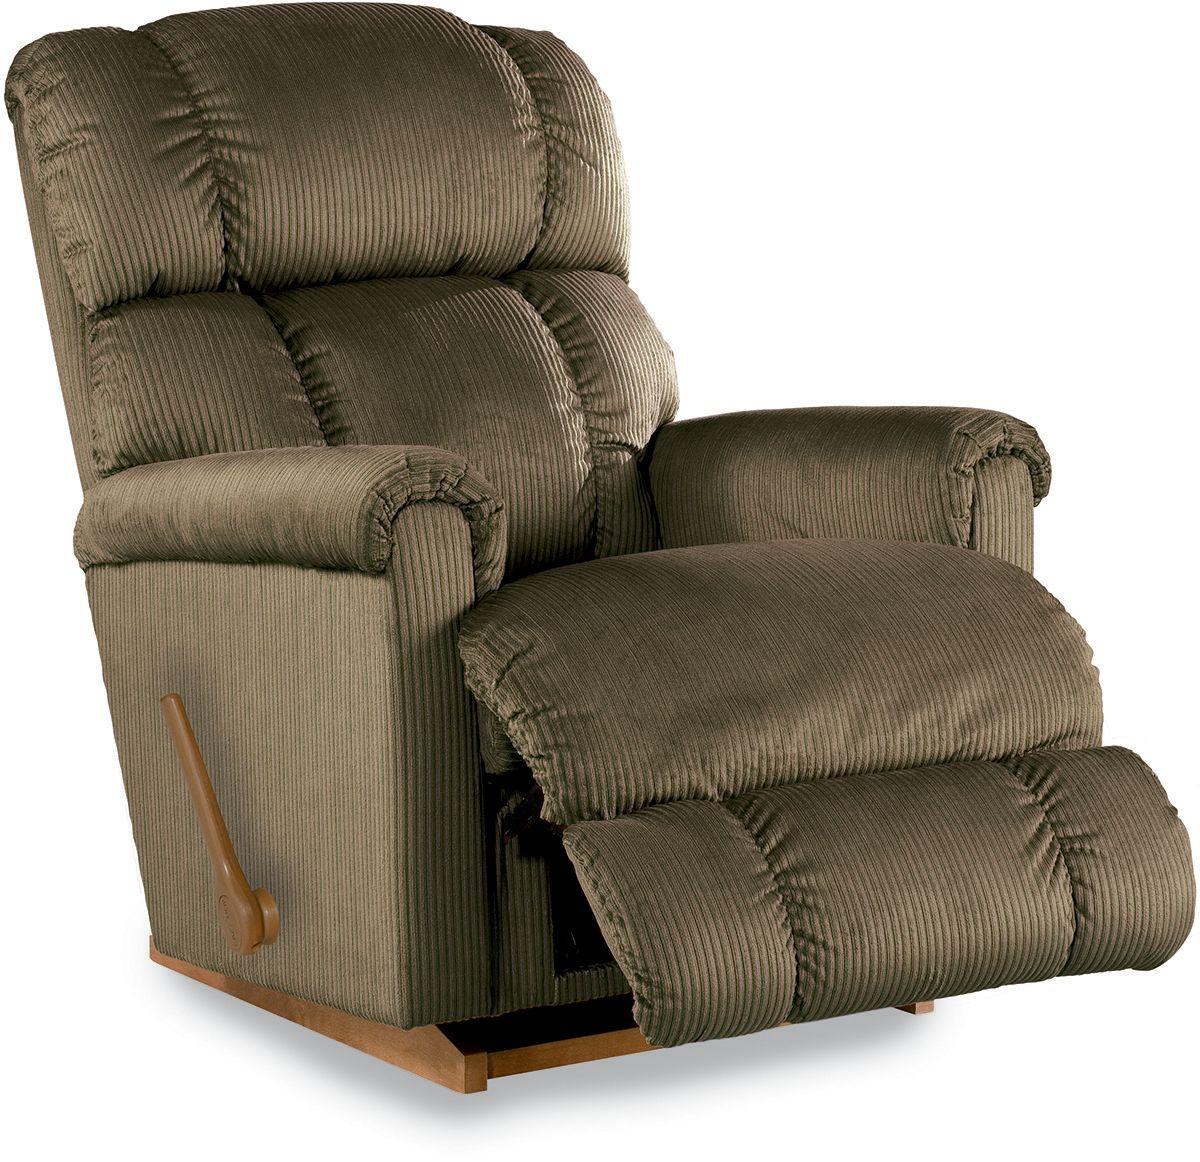 La-Z-Boy Snuggle Coffee Recliner